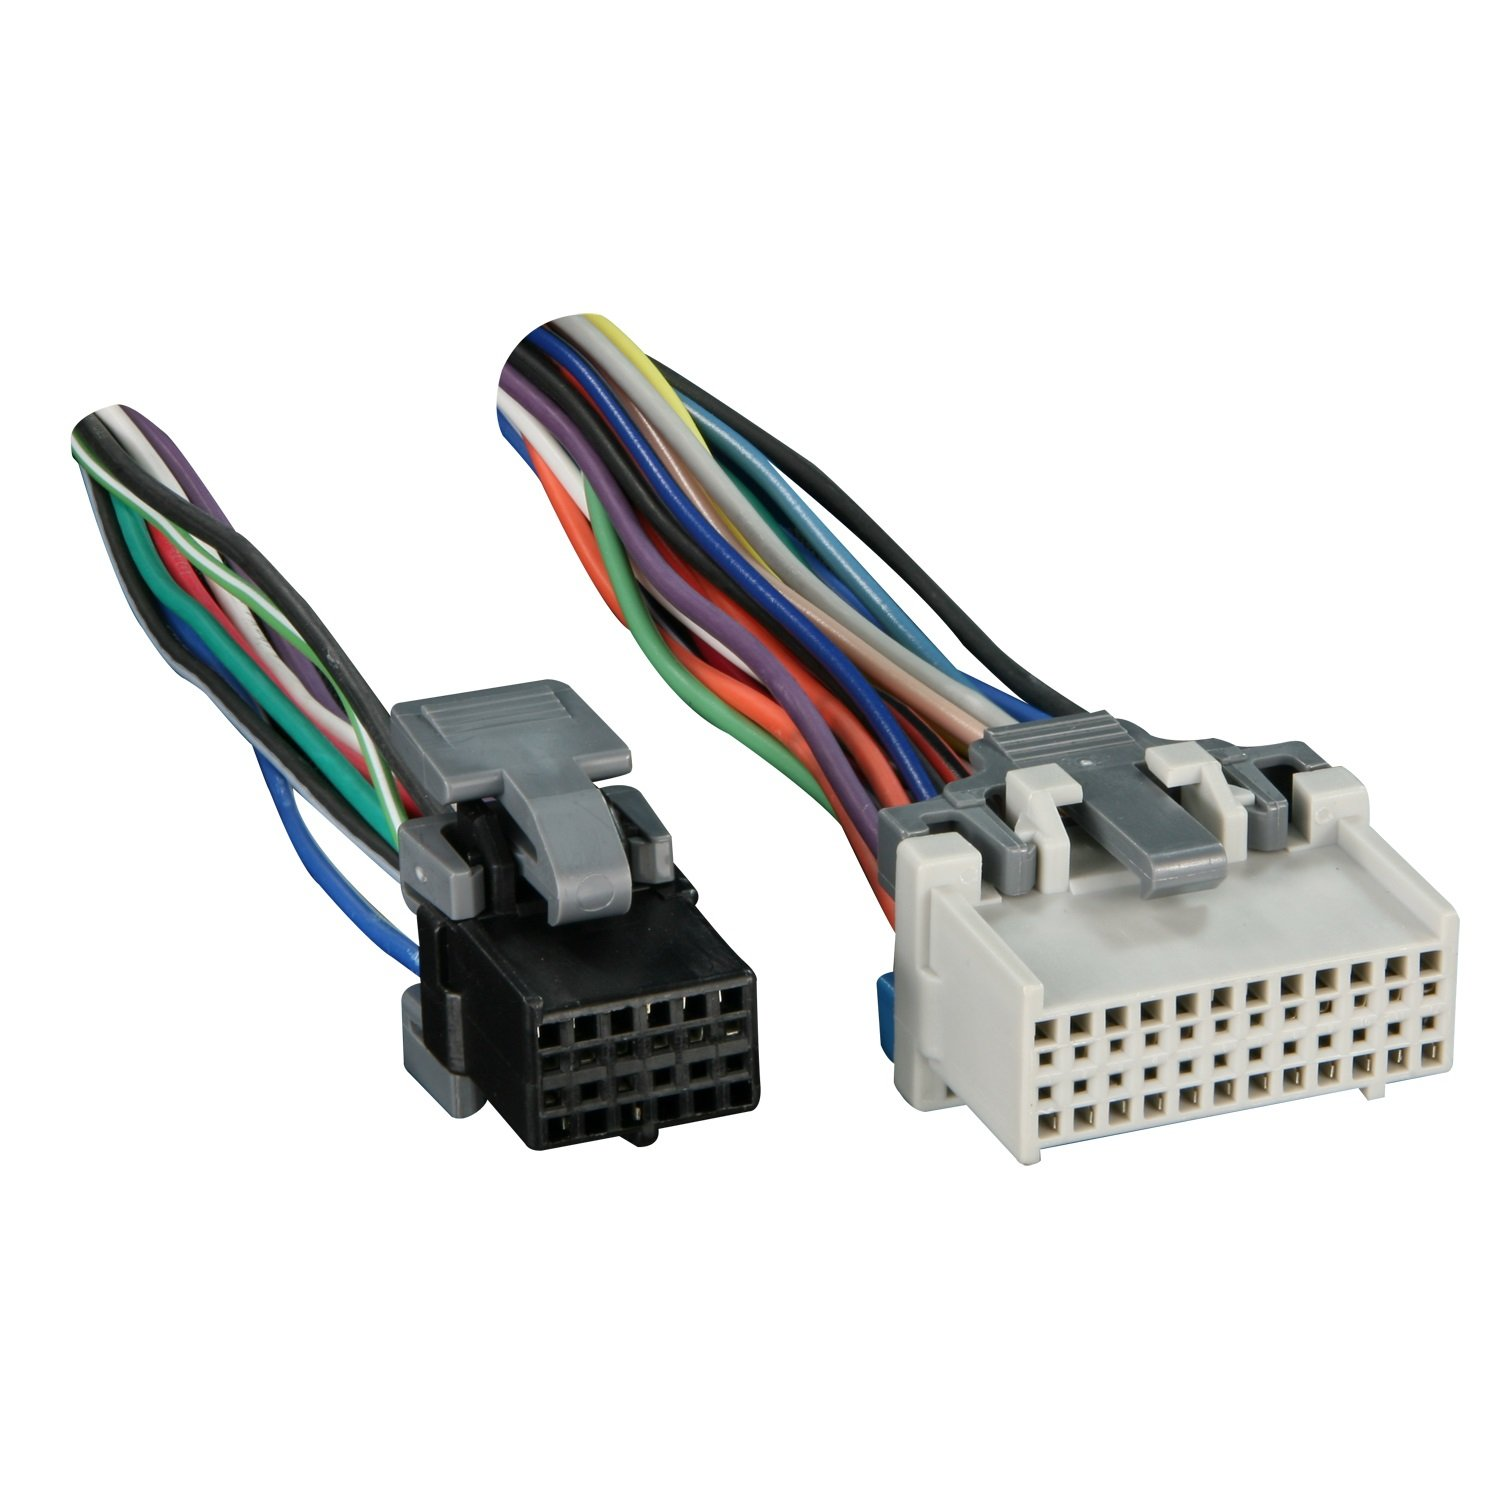 711log4bdML._SL1500_ amazon com metra turbowires 71 2003 1 wiring harness car electronics Automotive Wire Connectors at virtualis.co